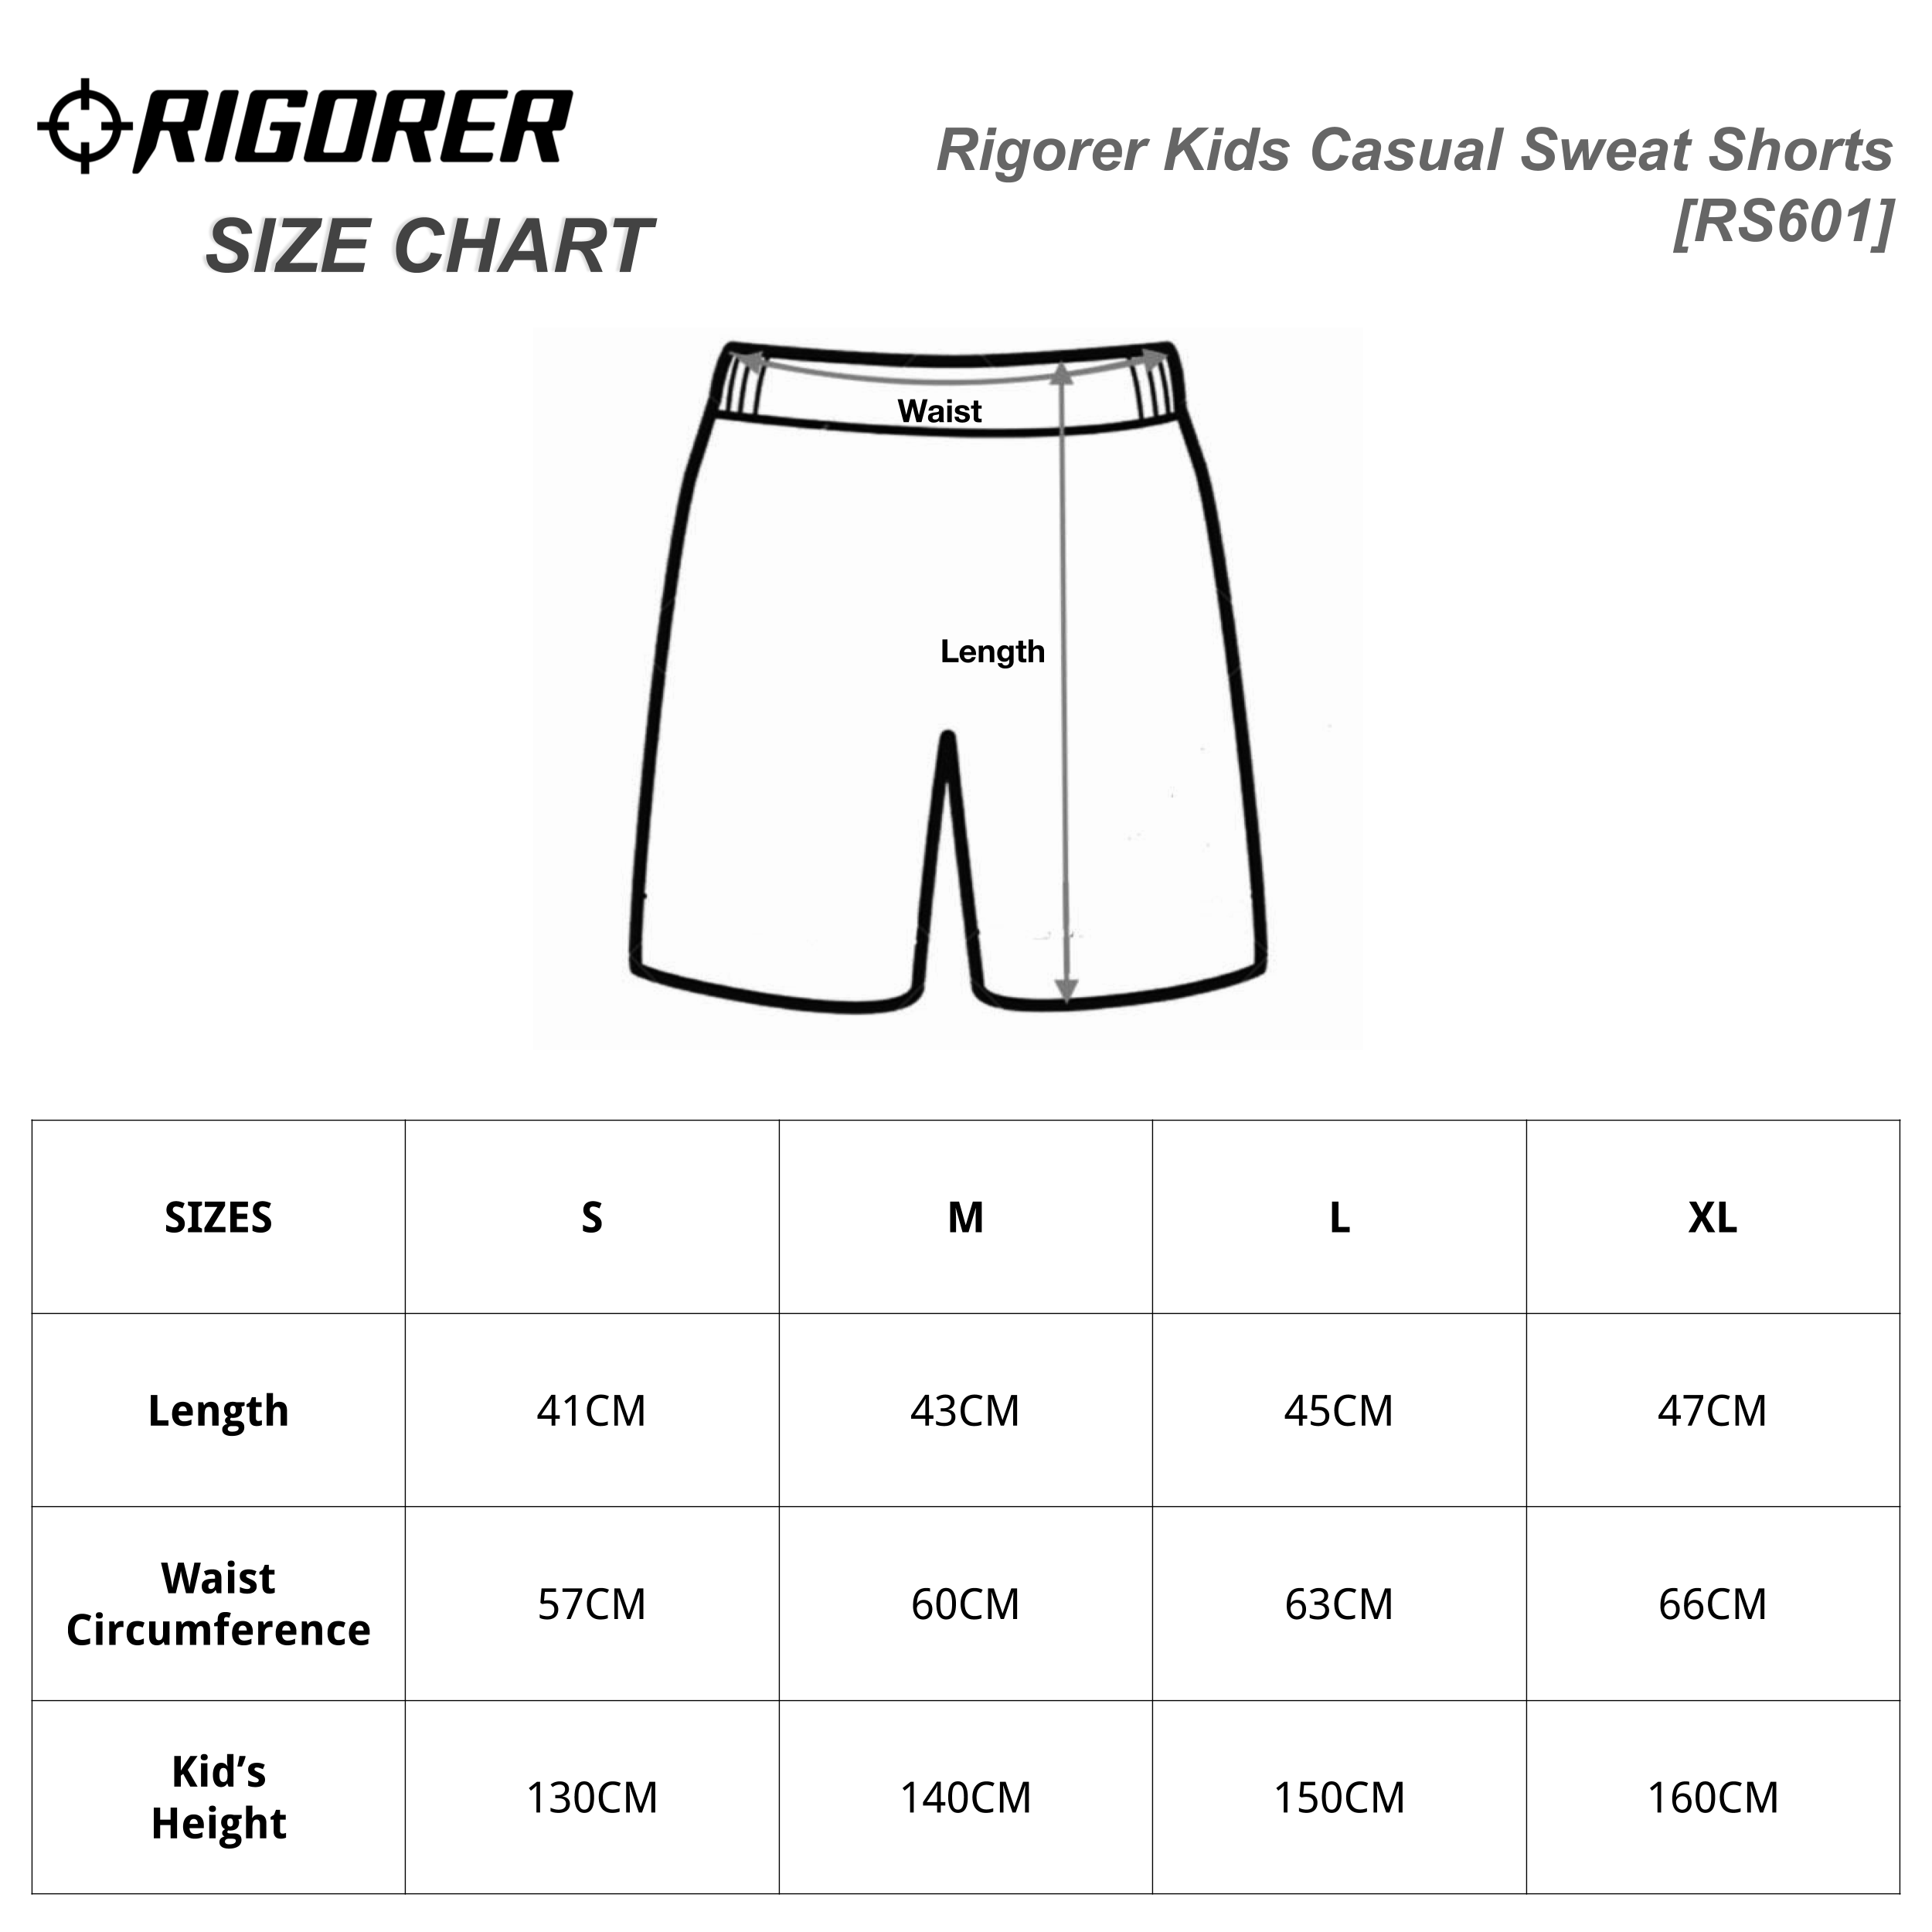 Rigorer Kids Casual Sweat Shorts [RS601] Sizing Chart